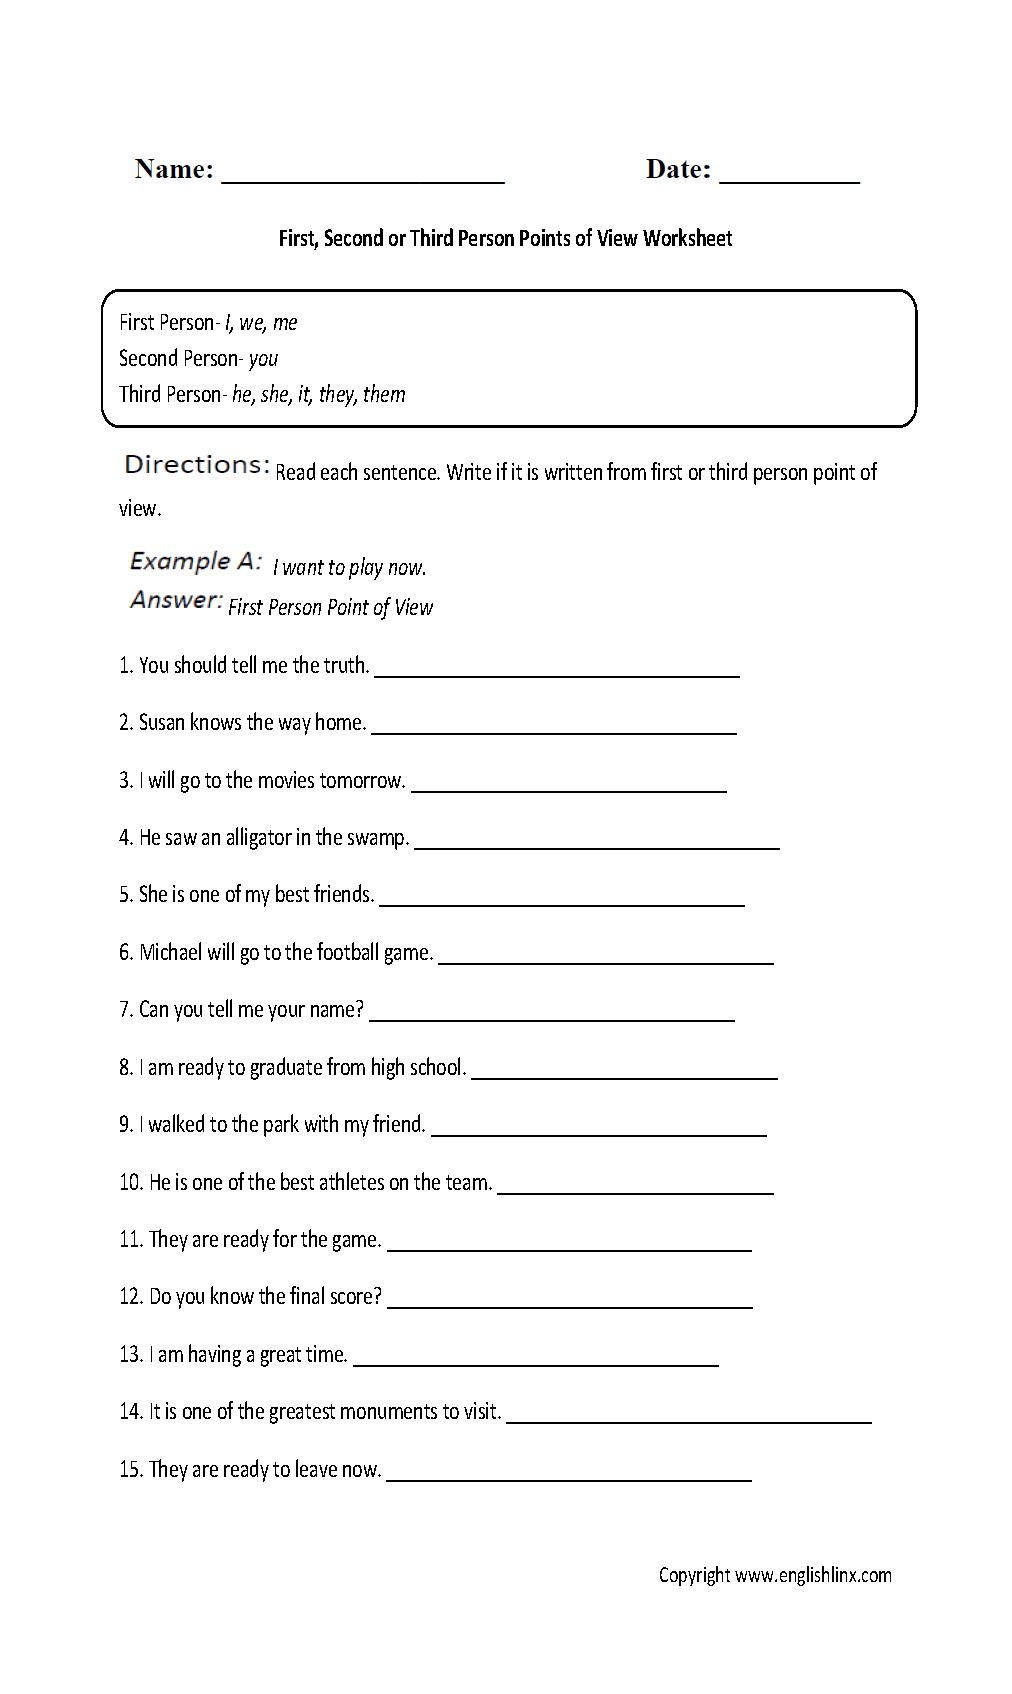 Proatmealus  Marvelous Englishlinxcom  Point Of View Worksheets With Fair Point Of View Worksheet With Divine Music Worksheets For Kids Also Sin Cos Tan Worksheet In Addition Middle School Science Worksheets And Presidents Day Worksheets As Well As Fire Safety Worksheets Additionally Time Tables Worksheets From Englishlinxcom With Proatmealus  Fair Englishlinxcom  Point Of View Worksheets With Divine Point Of View Worksheet And Marvelous Music Worksheets For Kids Also Sin Cos Tan Worksheet In Addition Middle School Science Worksheets From Englishlinxcom